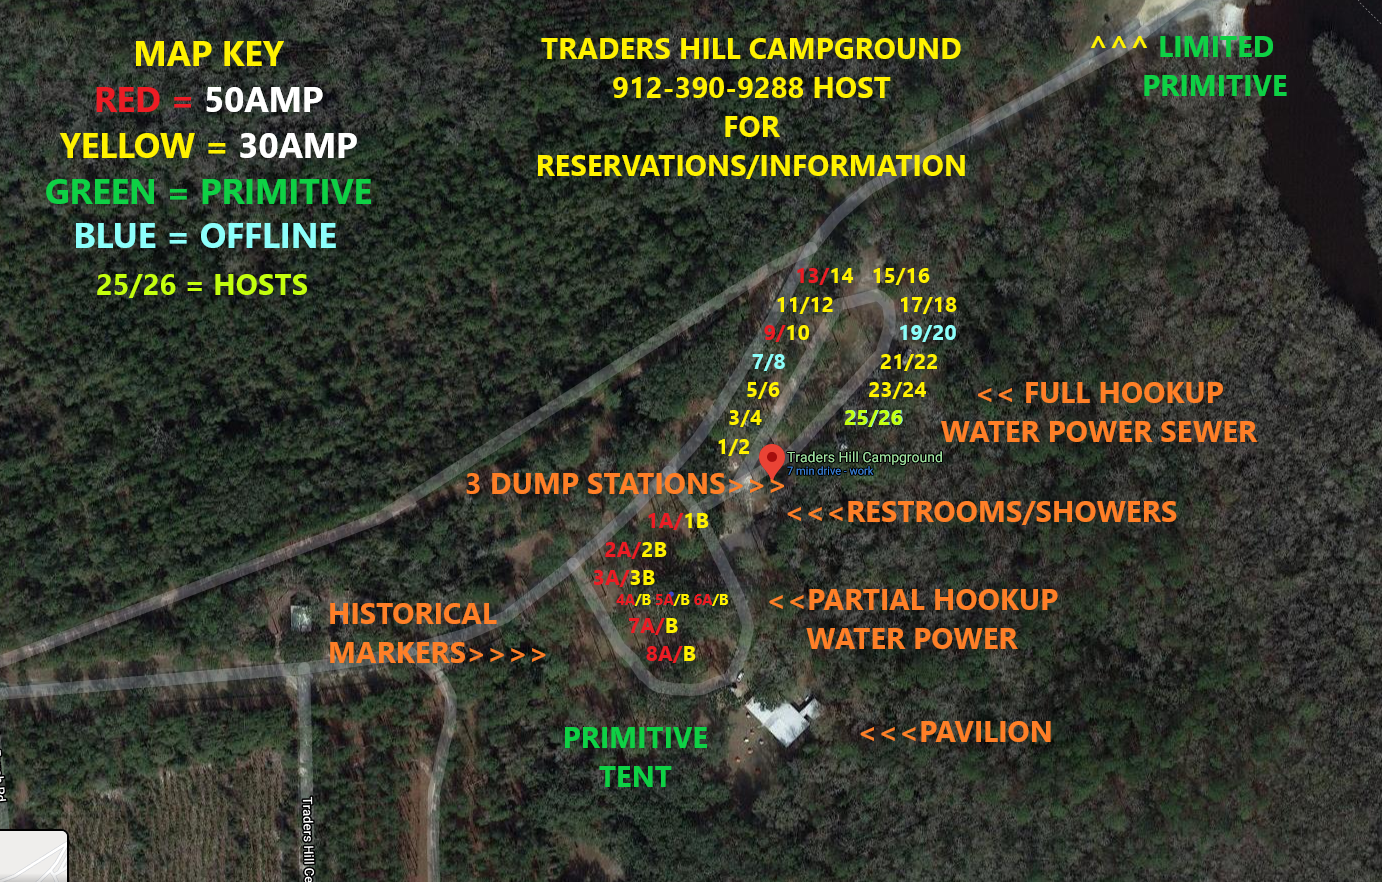 Traders Hill Campground